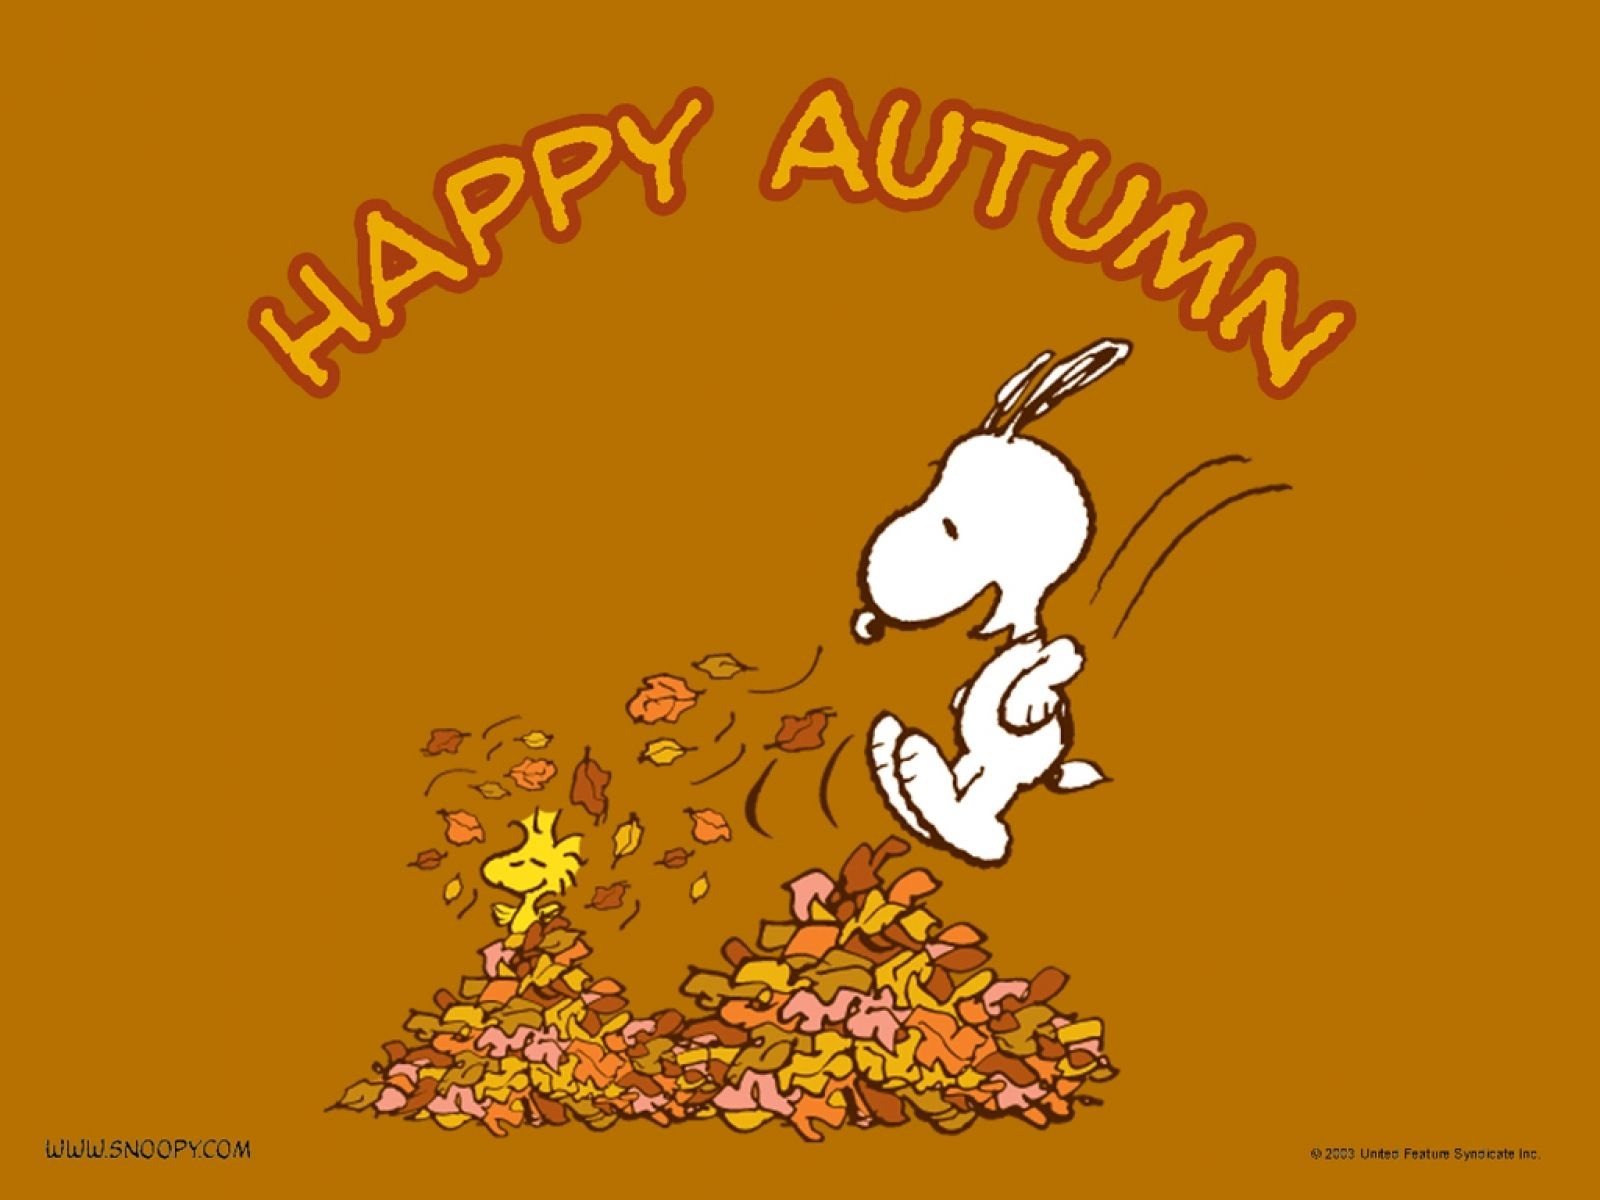 snoopy autumn wallpaper at snoopy autumn wallpaper for